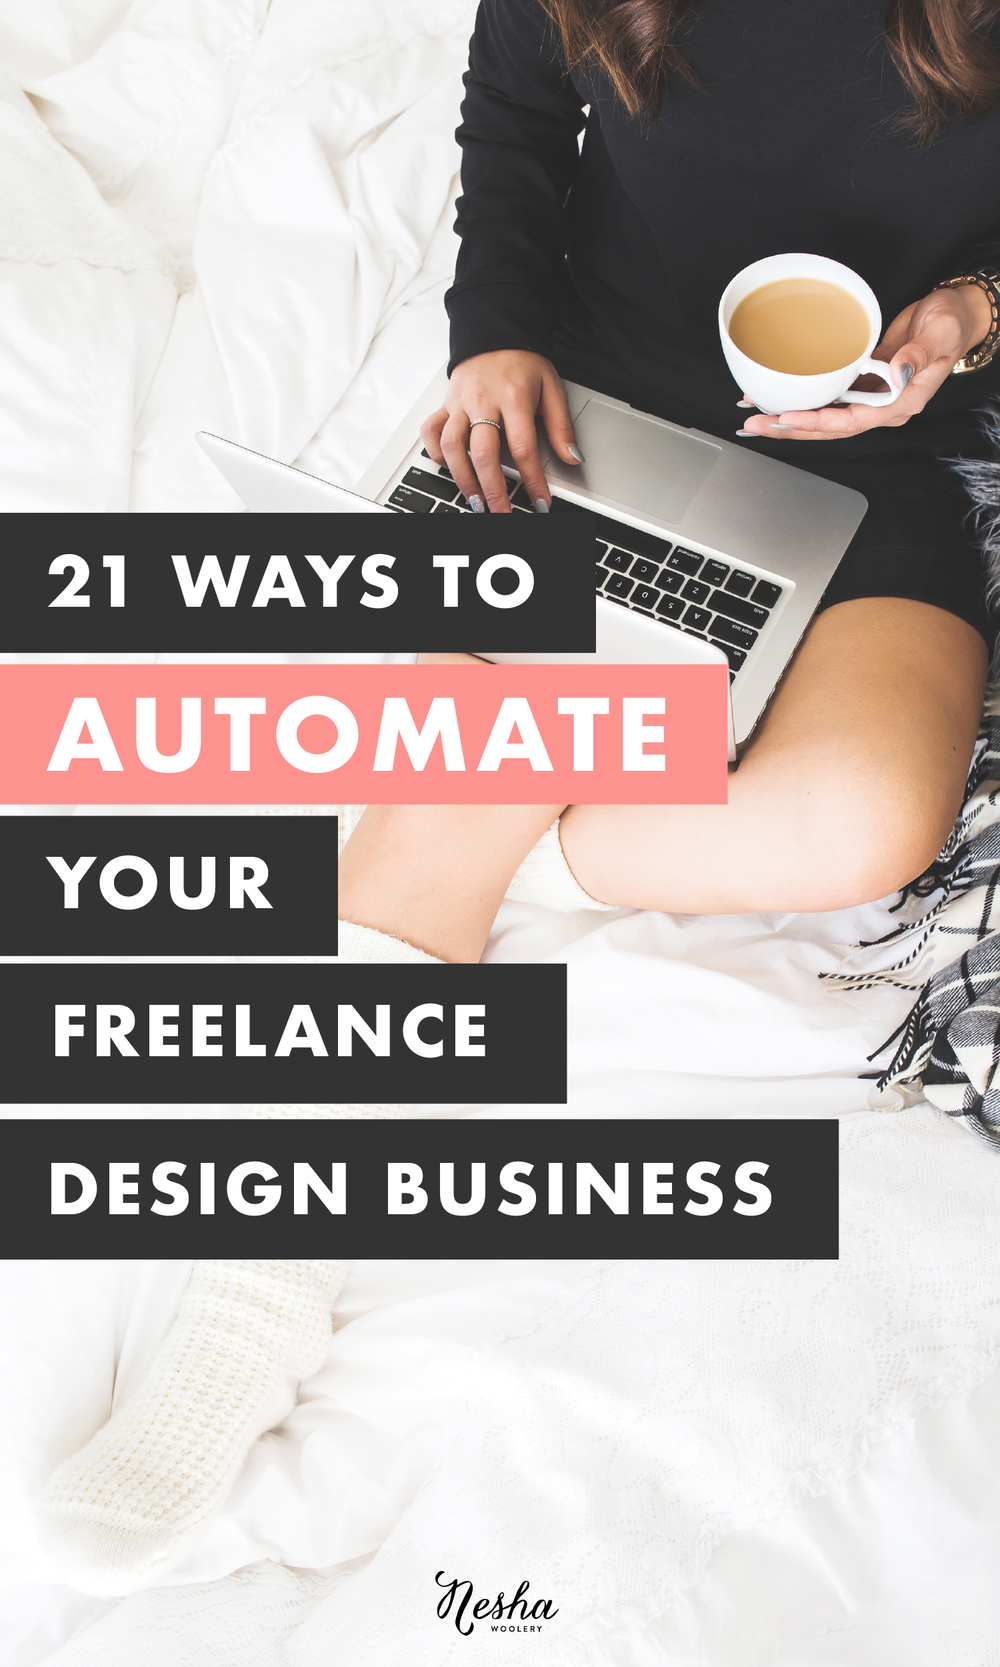 21 ways to automate your design business by Nesha Woolery. Is your business stressing you out? Does it feel like you never get through your to-do list? Like there's not enough time in the year? Here's a list of 21 things you can automate your design business RIGHT NOW! Click through to learn more + sign up for the free course!